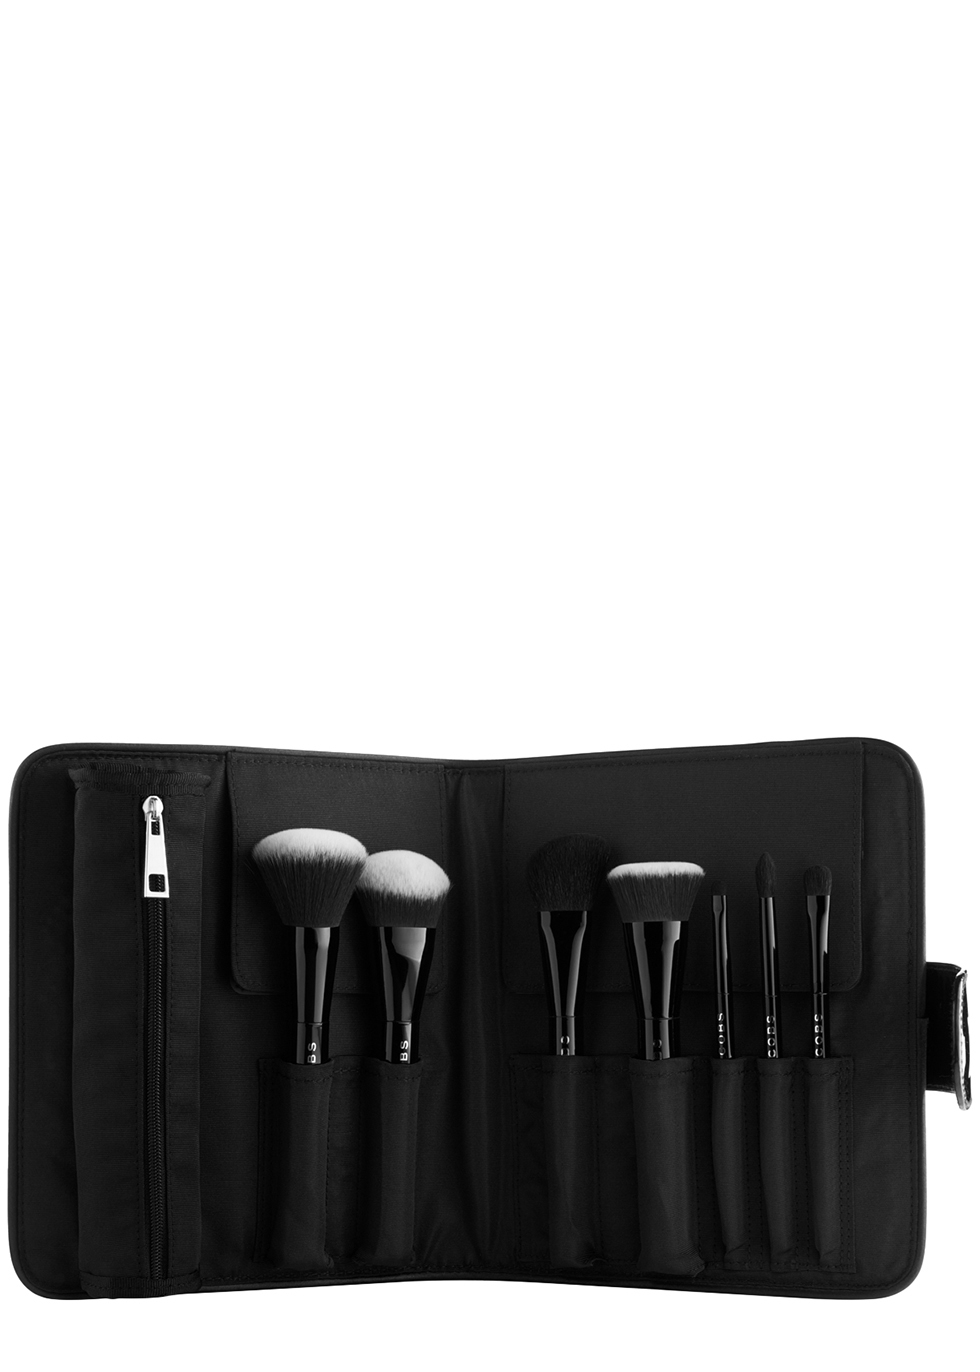 Have It All Brush Collection - MARC JACOBS BEAUTY